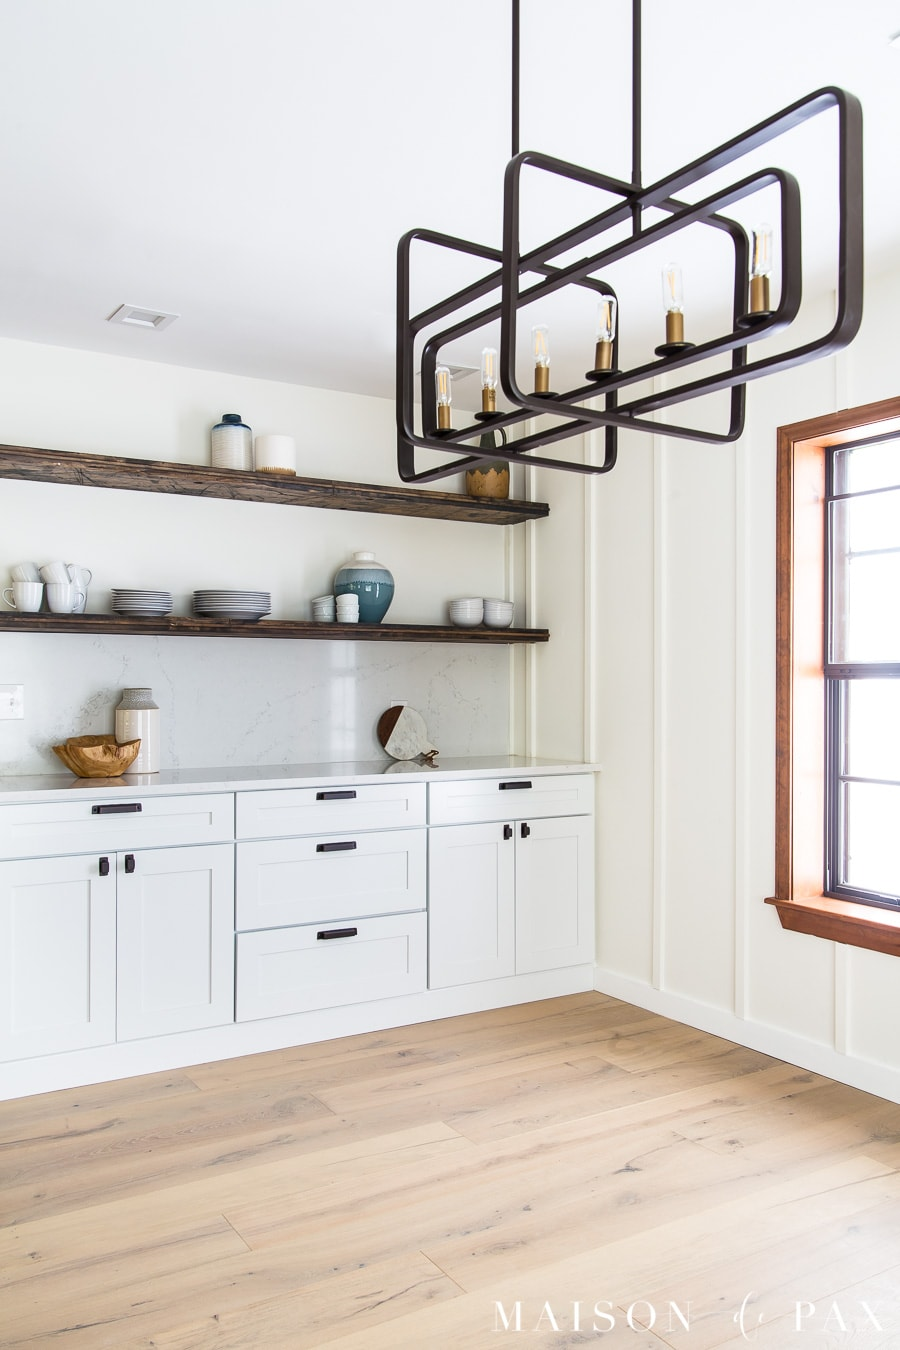 open shelves above kitchen cabinets | Maison de Pax